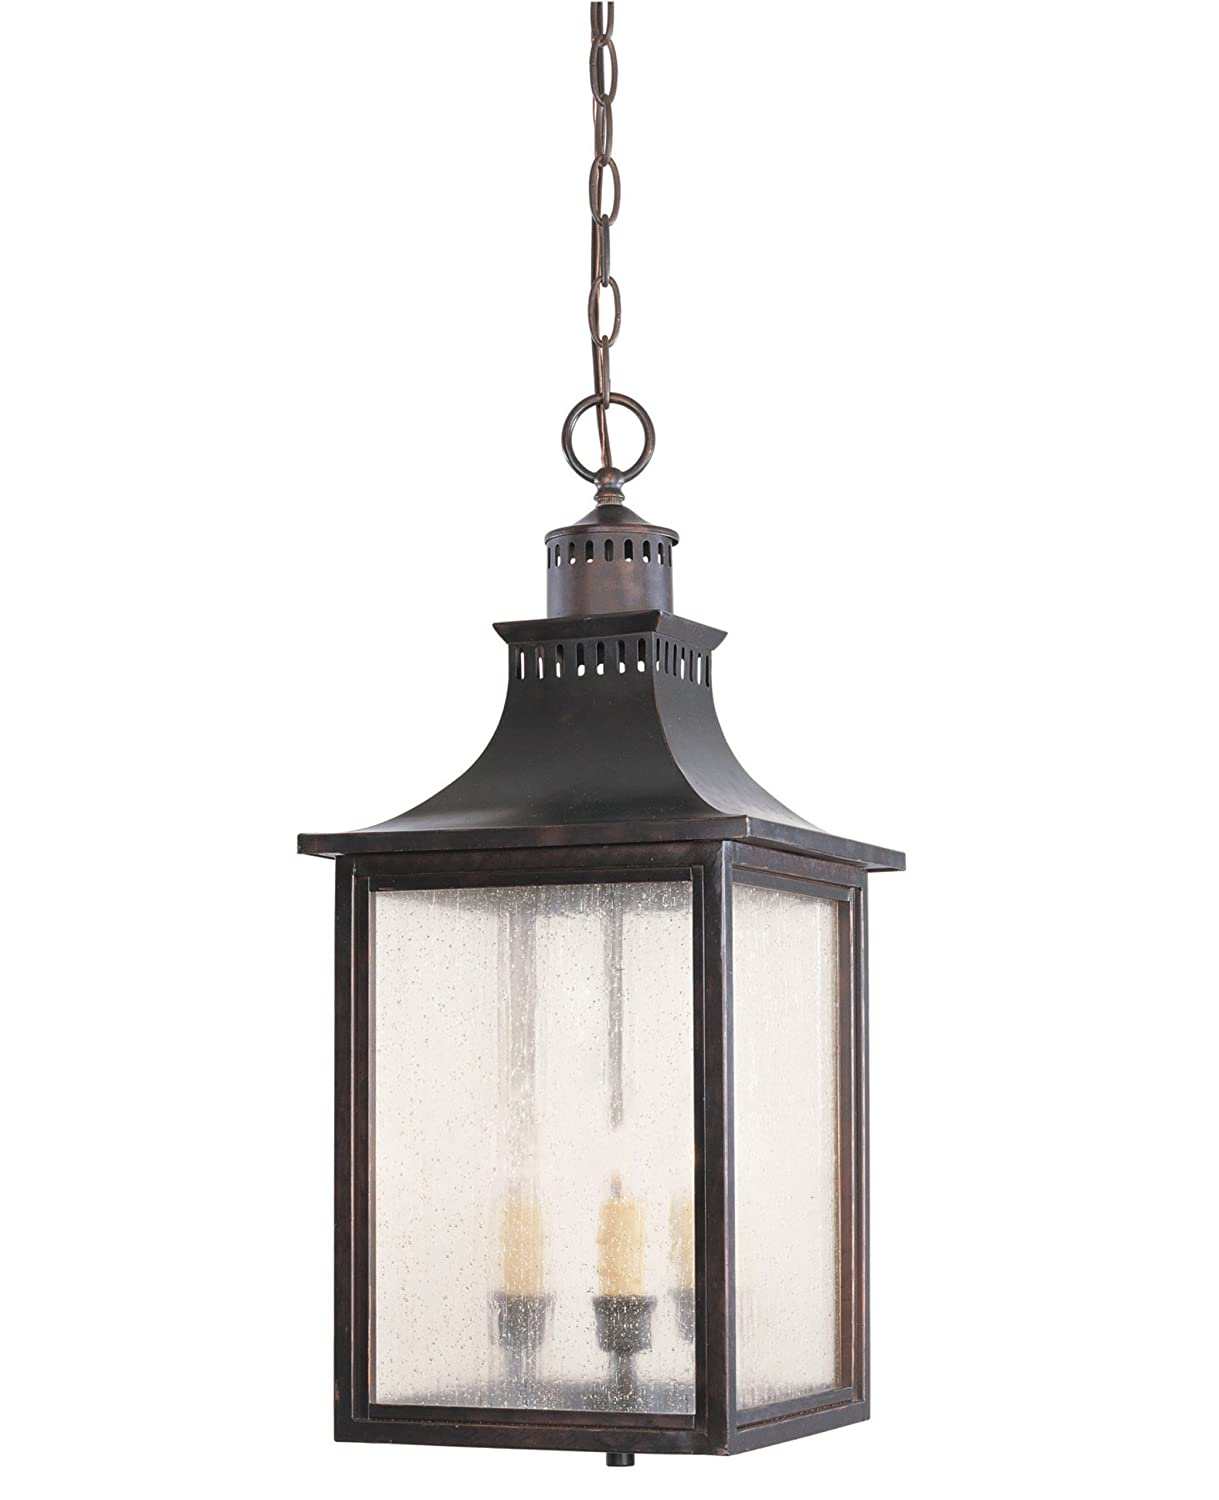 Savoy house lighting 5 256 25 monte grande collection 3 light savoy house lighting 5 256 25 monte grande collection 3 light outdoor hanging entry lantern slate finish with pale cream seeded glass pendant porch aloadofball Images